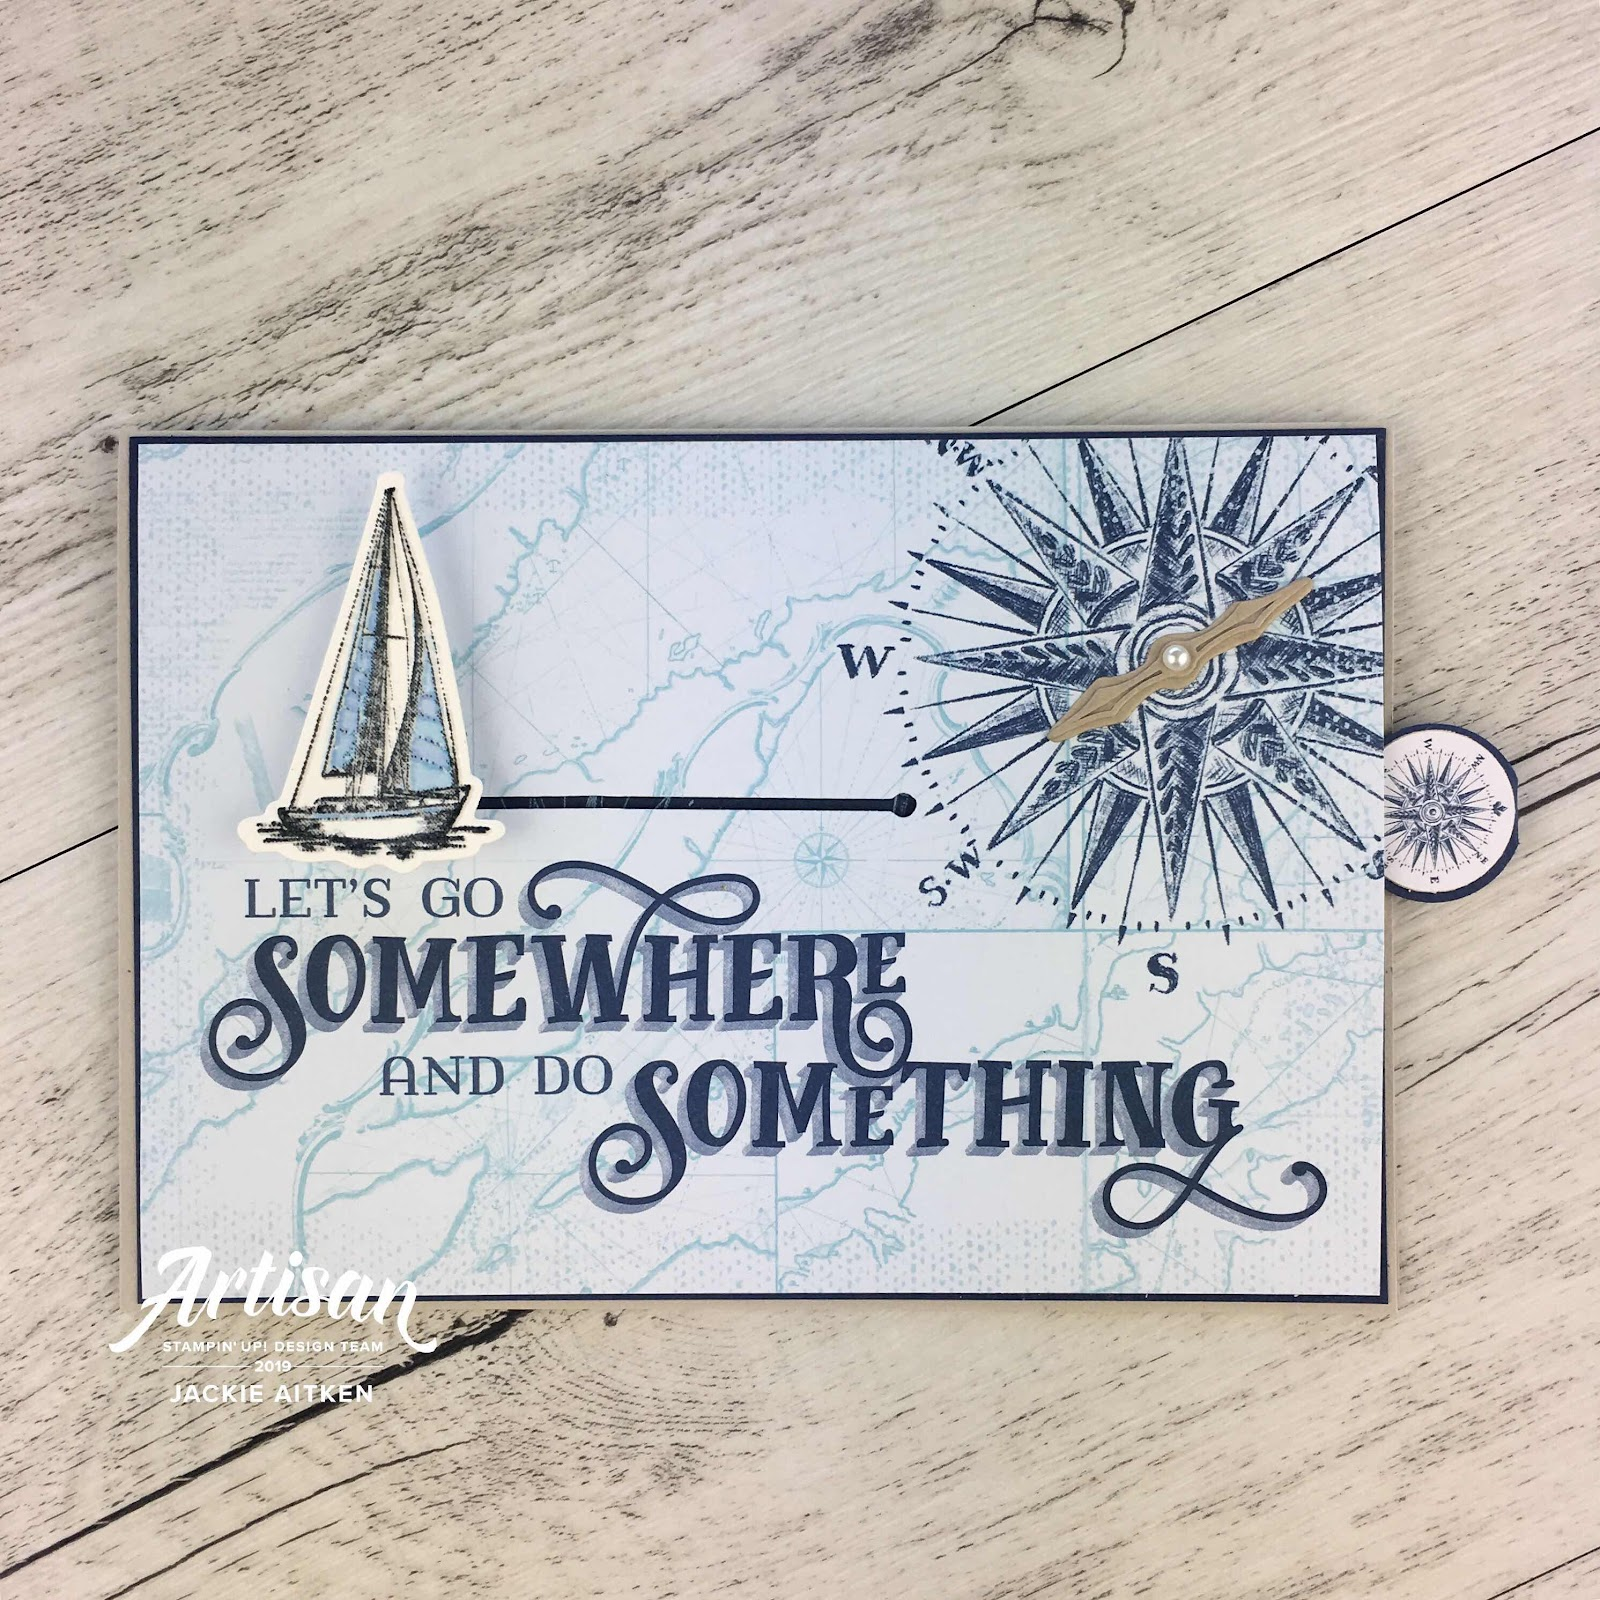 Jaxx Crafty Creations, Artisan Design Team 2019, Come Sail Away, Memories & More Card Pack, Nautical Creations, Shadow Box Card, Slider Card,